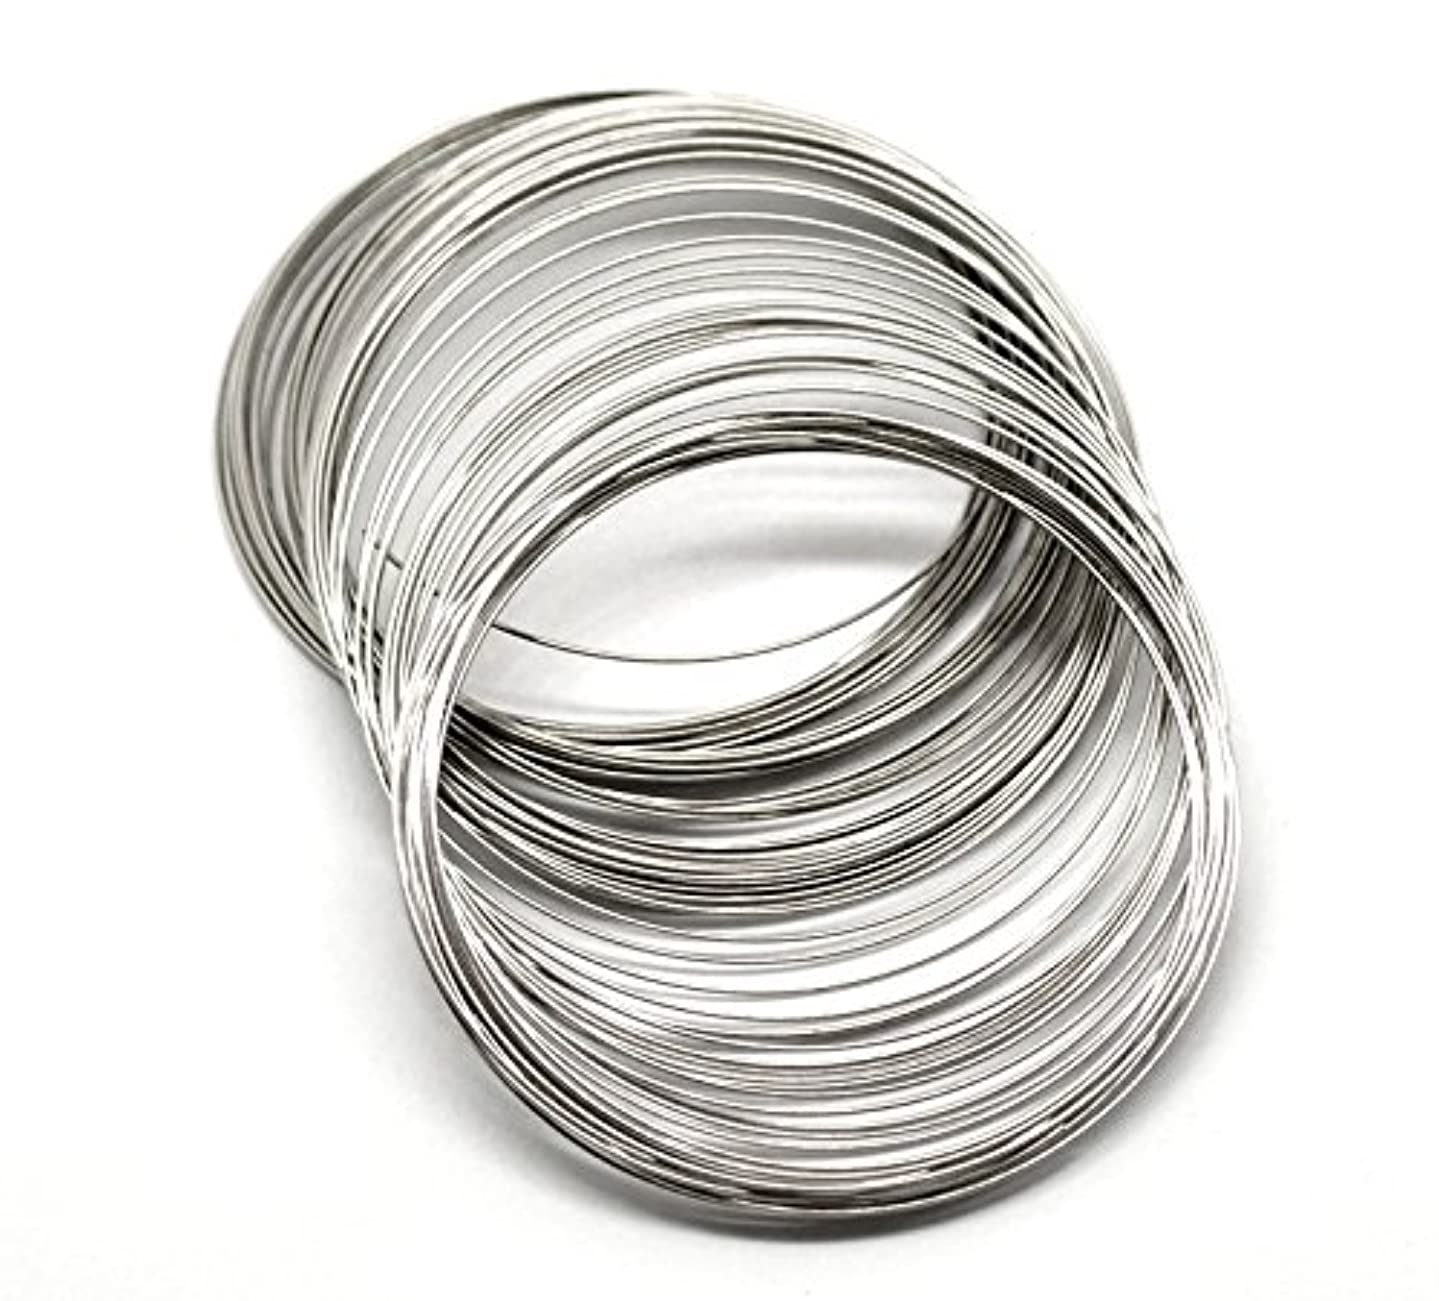 PEPPERLONELY Brand 200 Loop Silver Tone Memory Beading Wire for Bracelet 2-3/4 x 2-15/16 Inch (70MM-75MM)